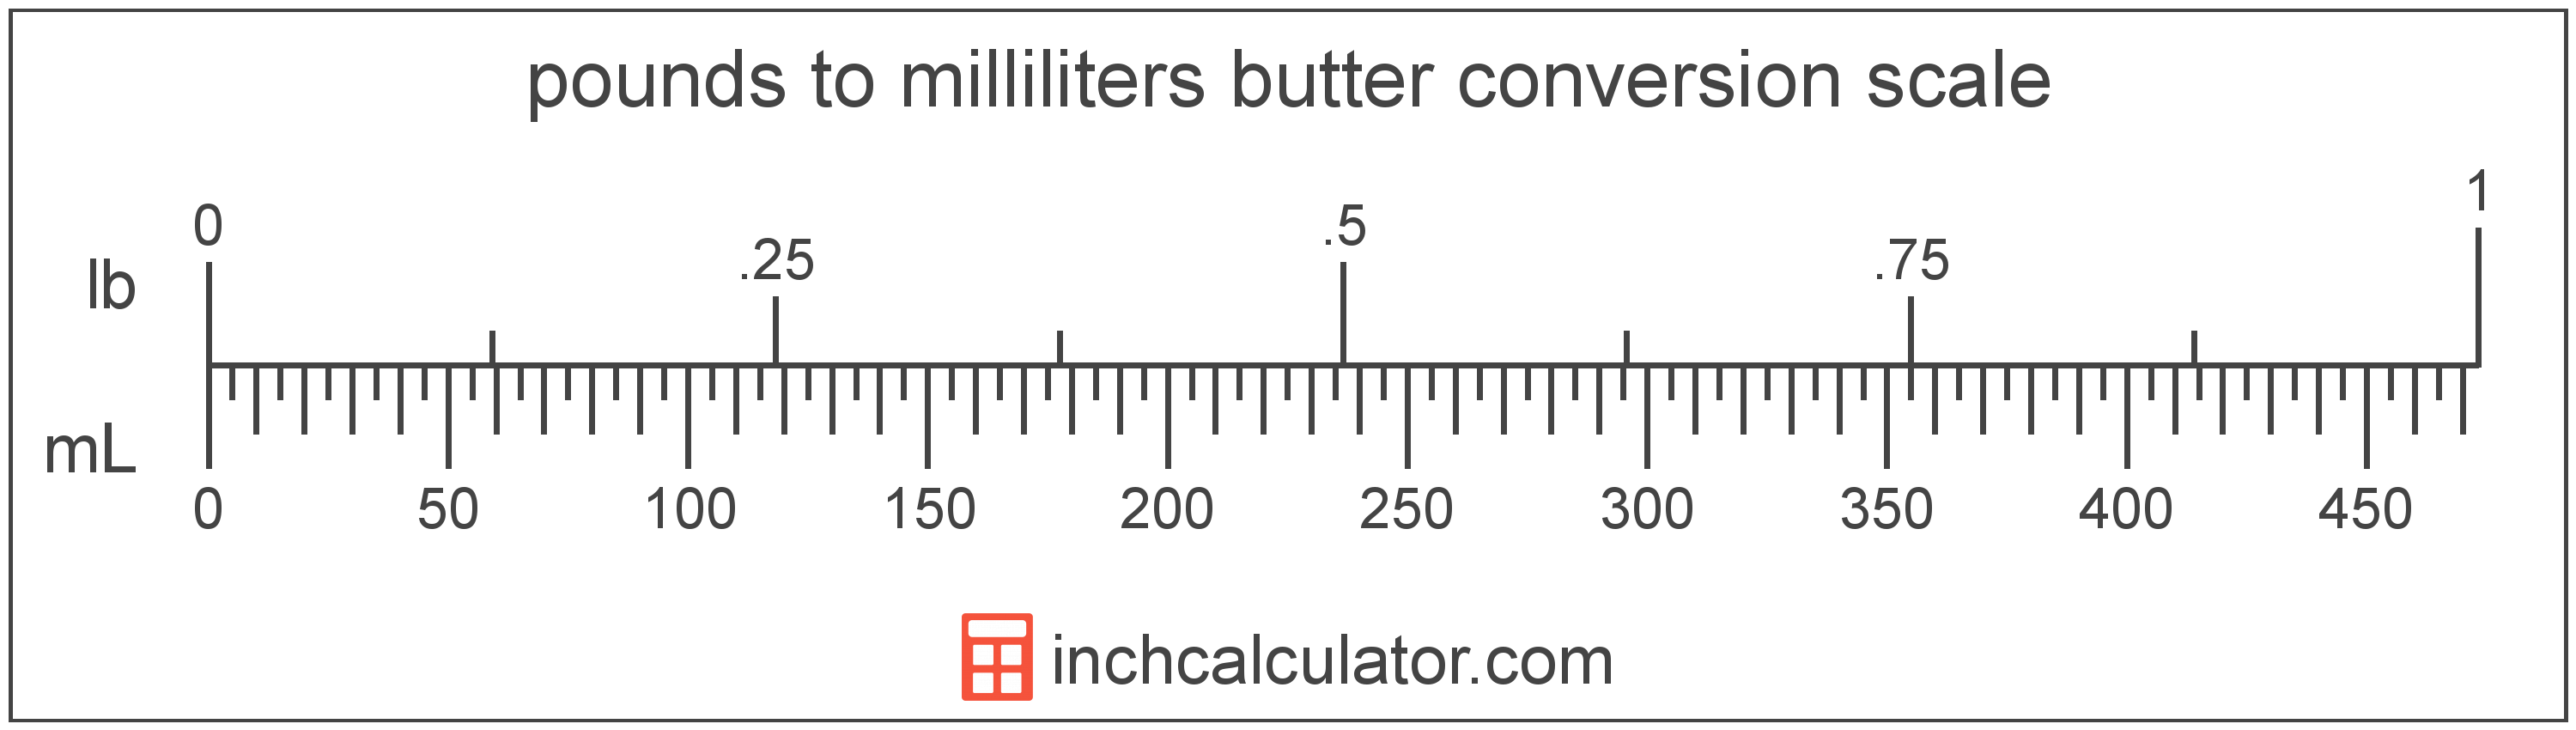 Milliliters Of Butter To Pounds Conversion Ml To Lb